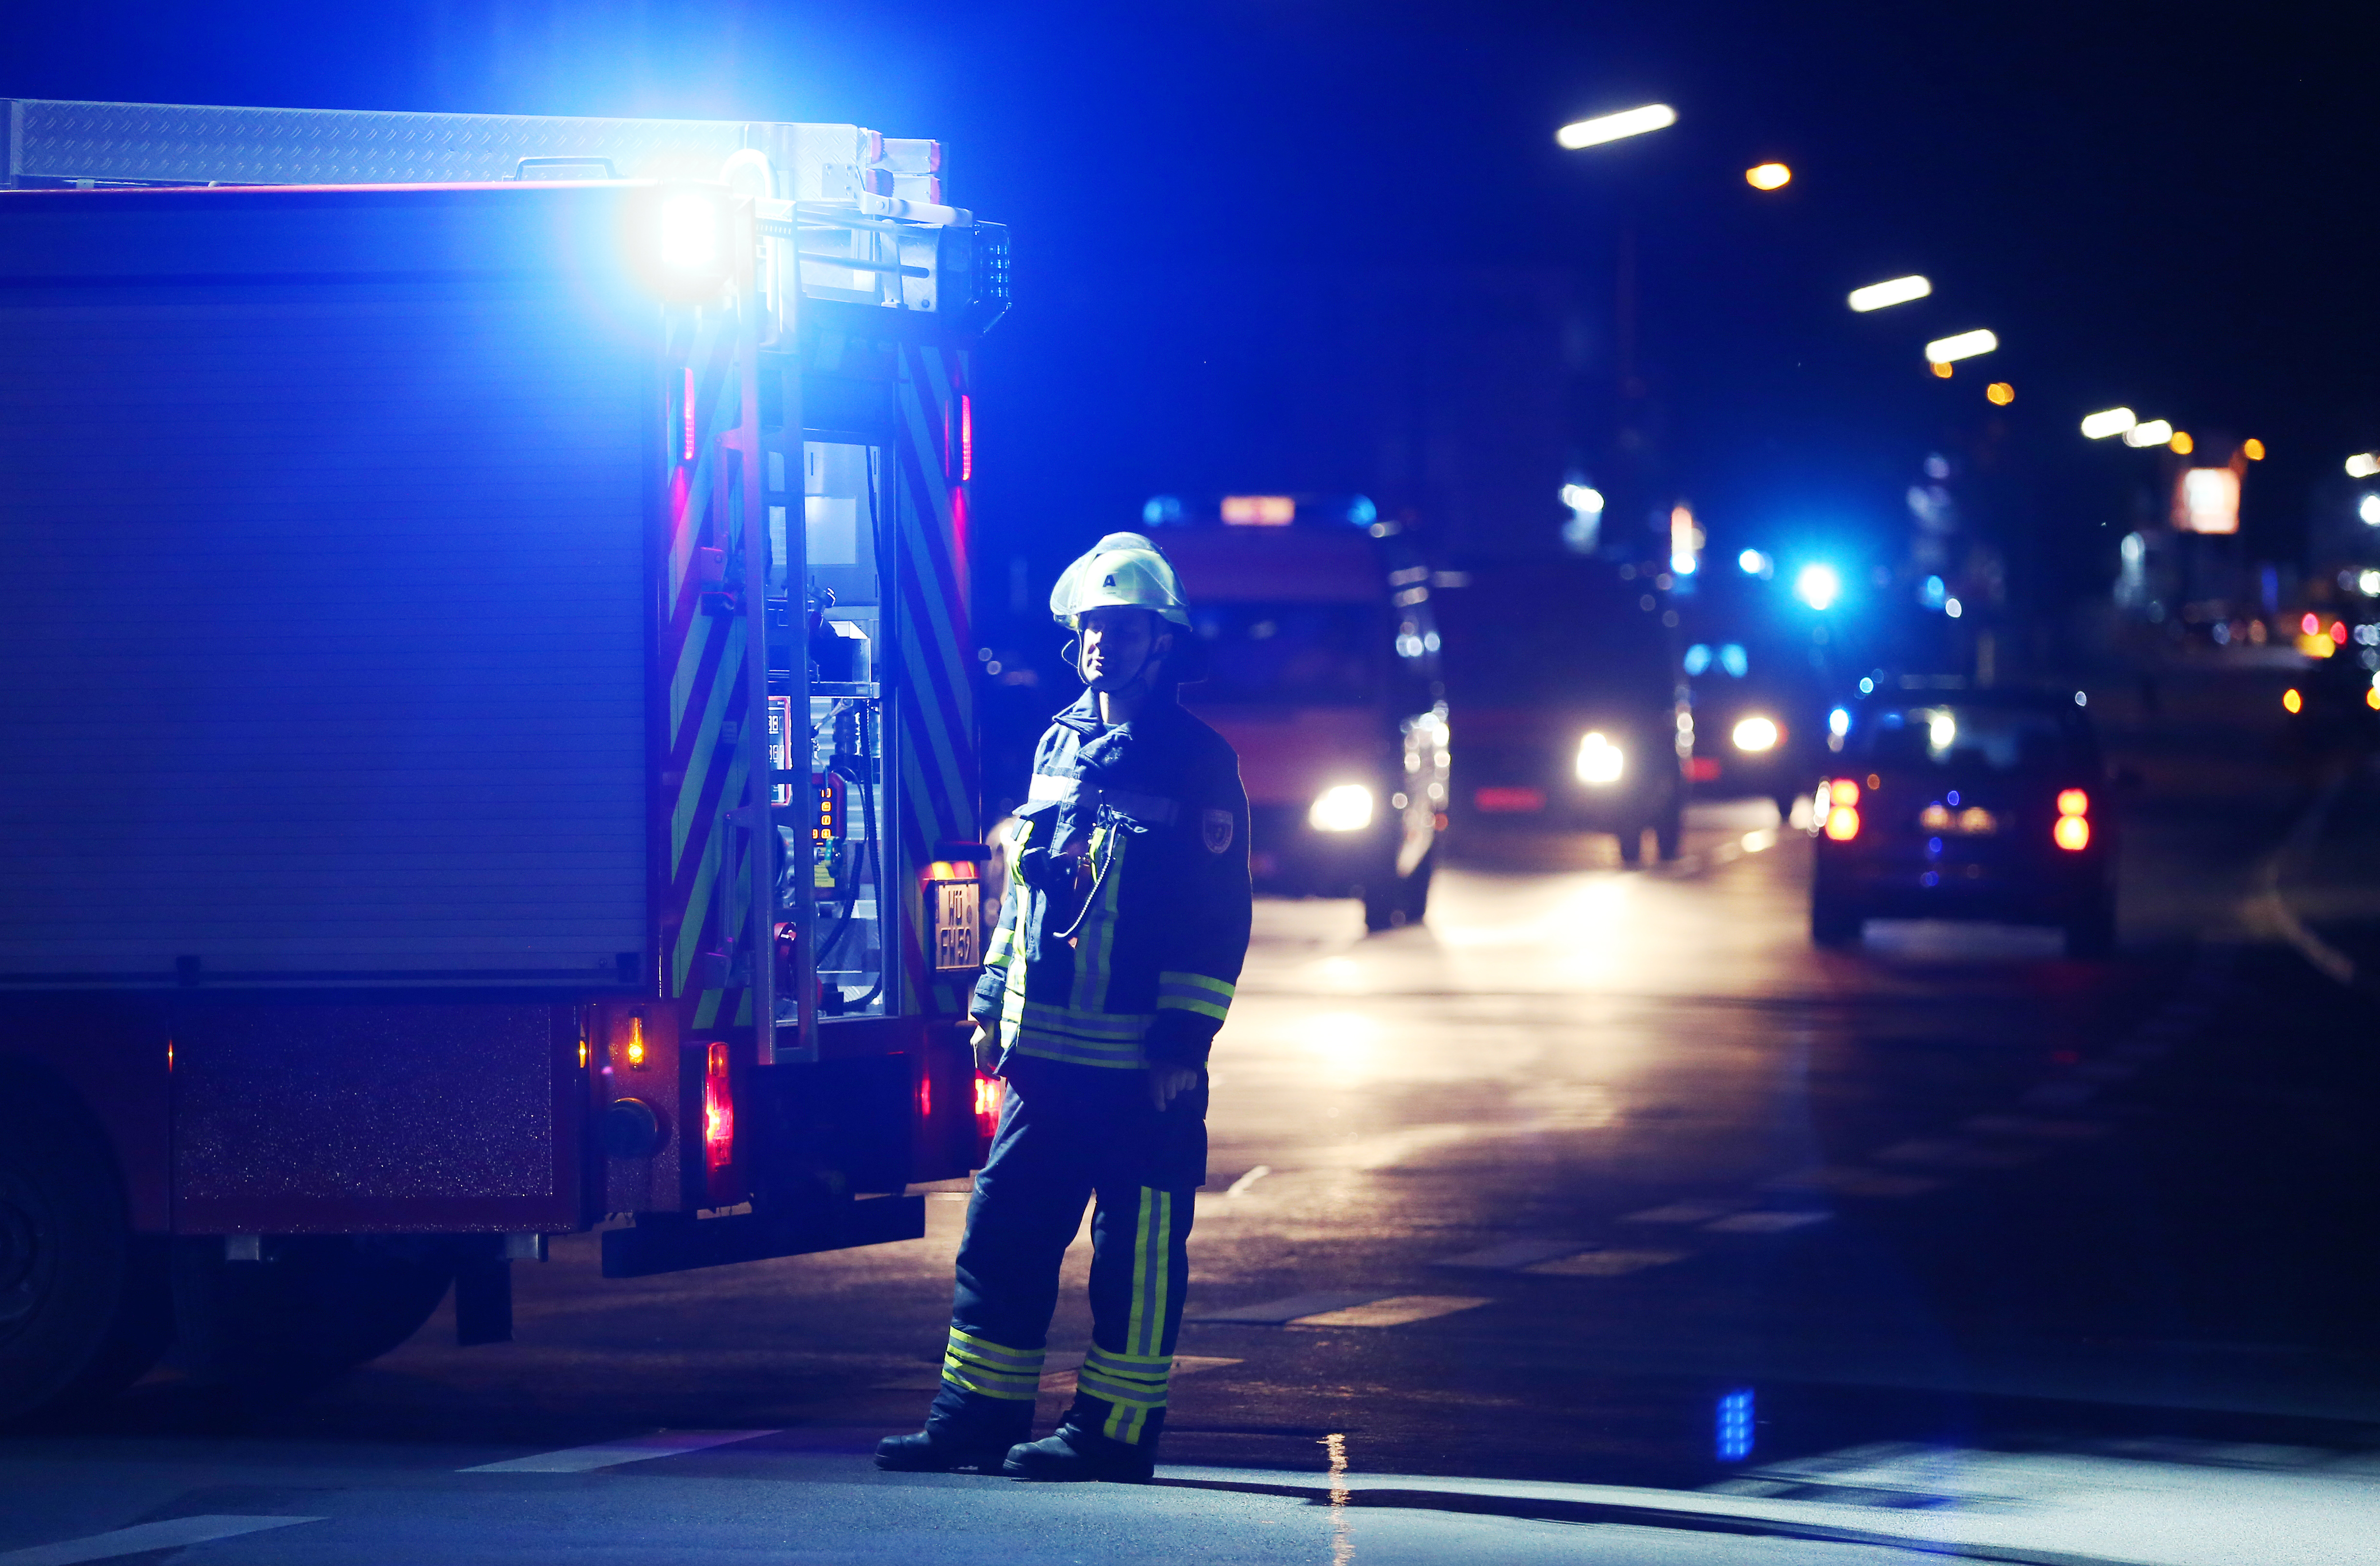 Alleged axe attack on train in northern Bavaria